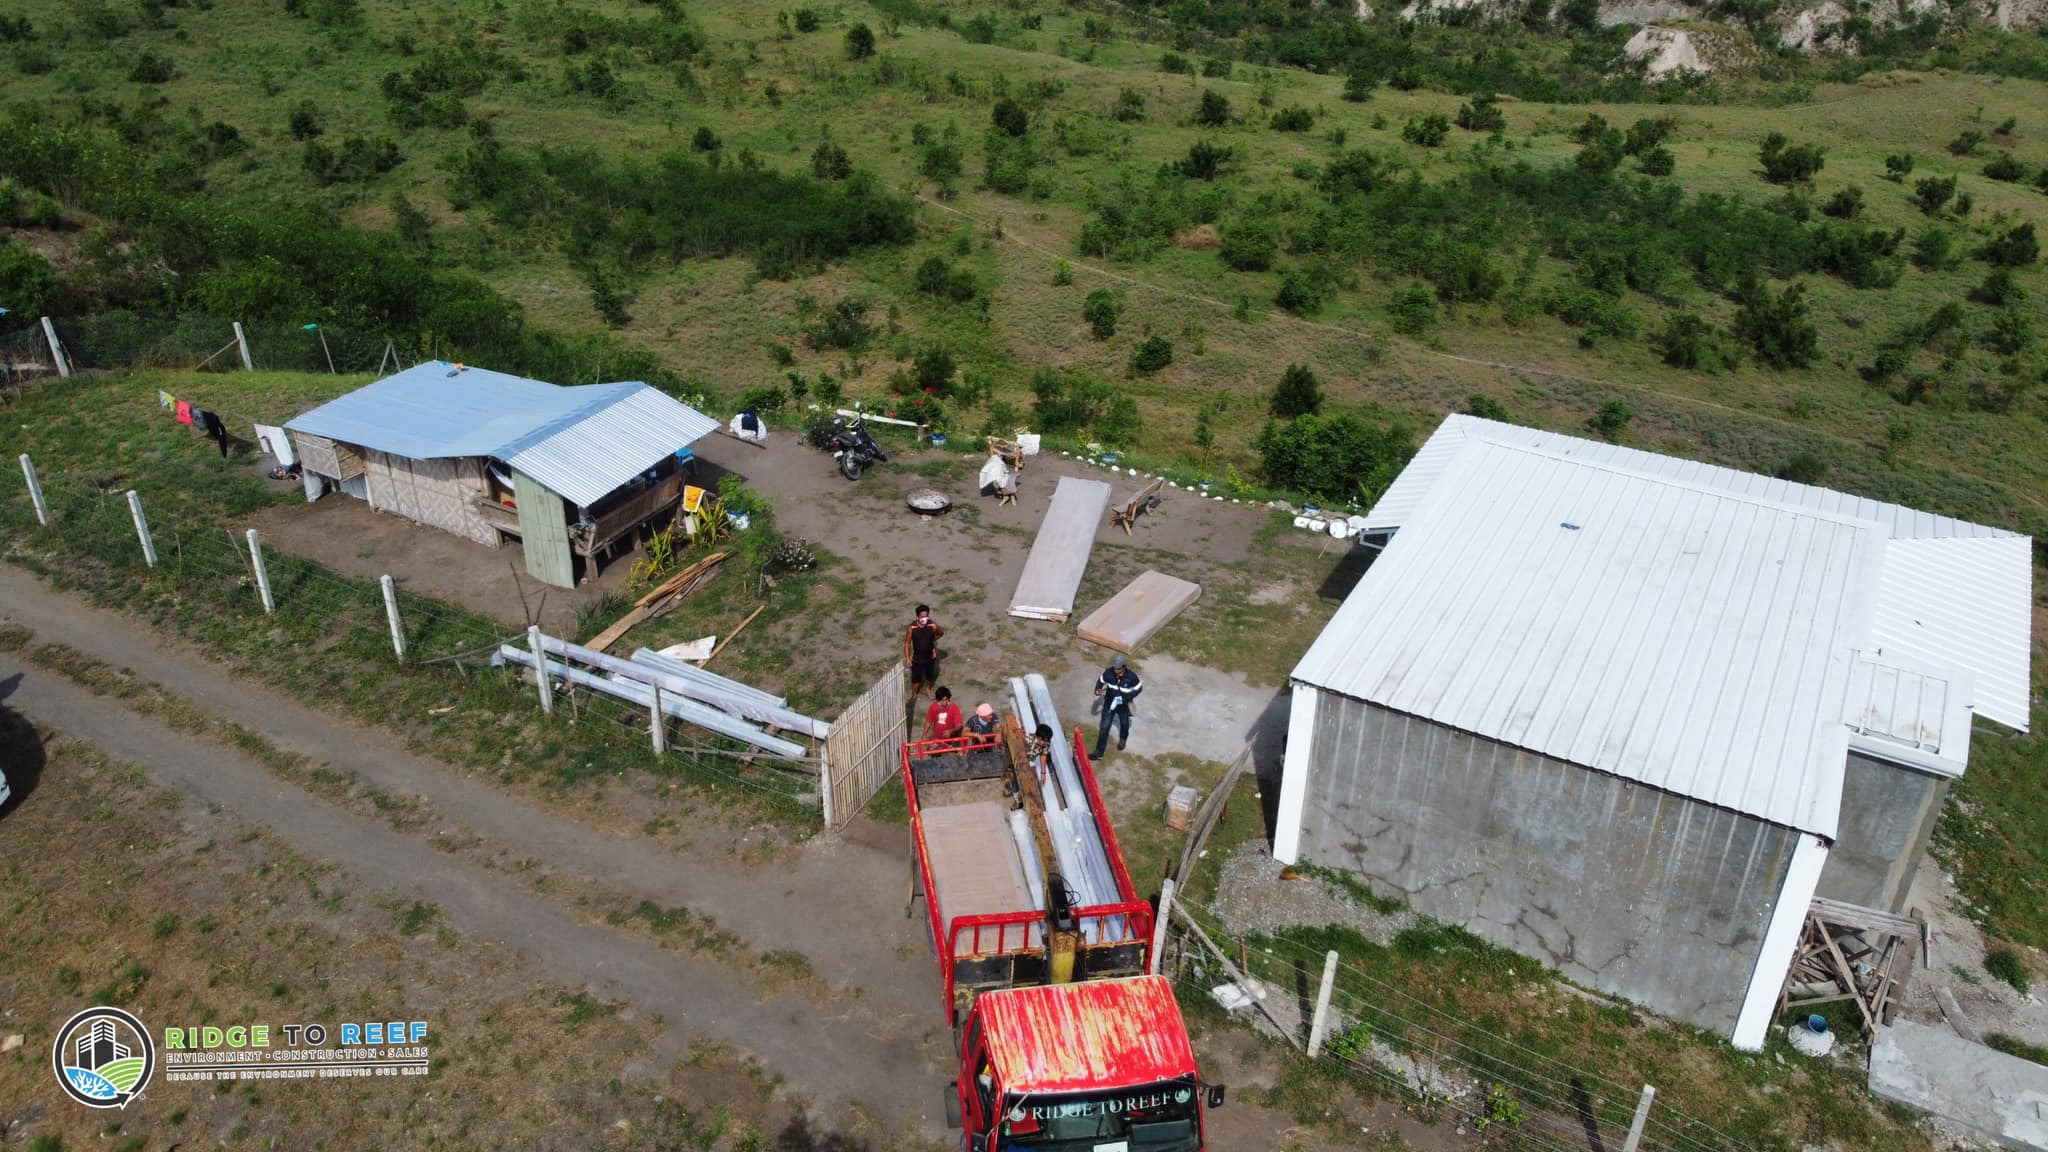 Installation of pre-fabricated houses in General Santos City for a proposed development project of the R2R Group